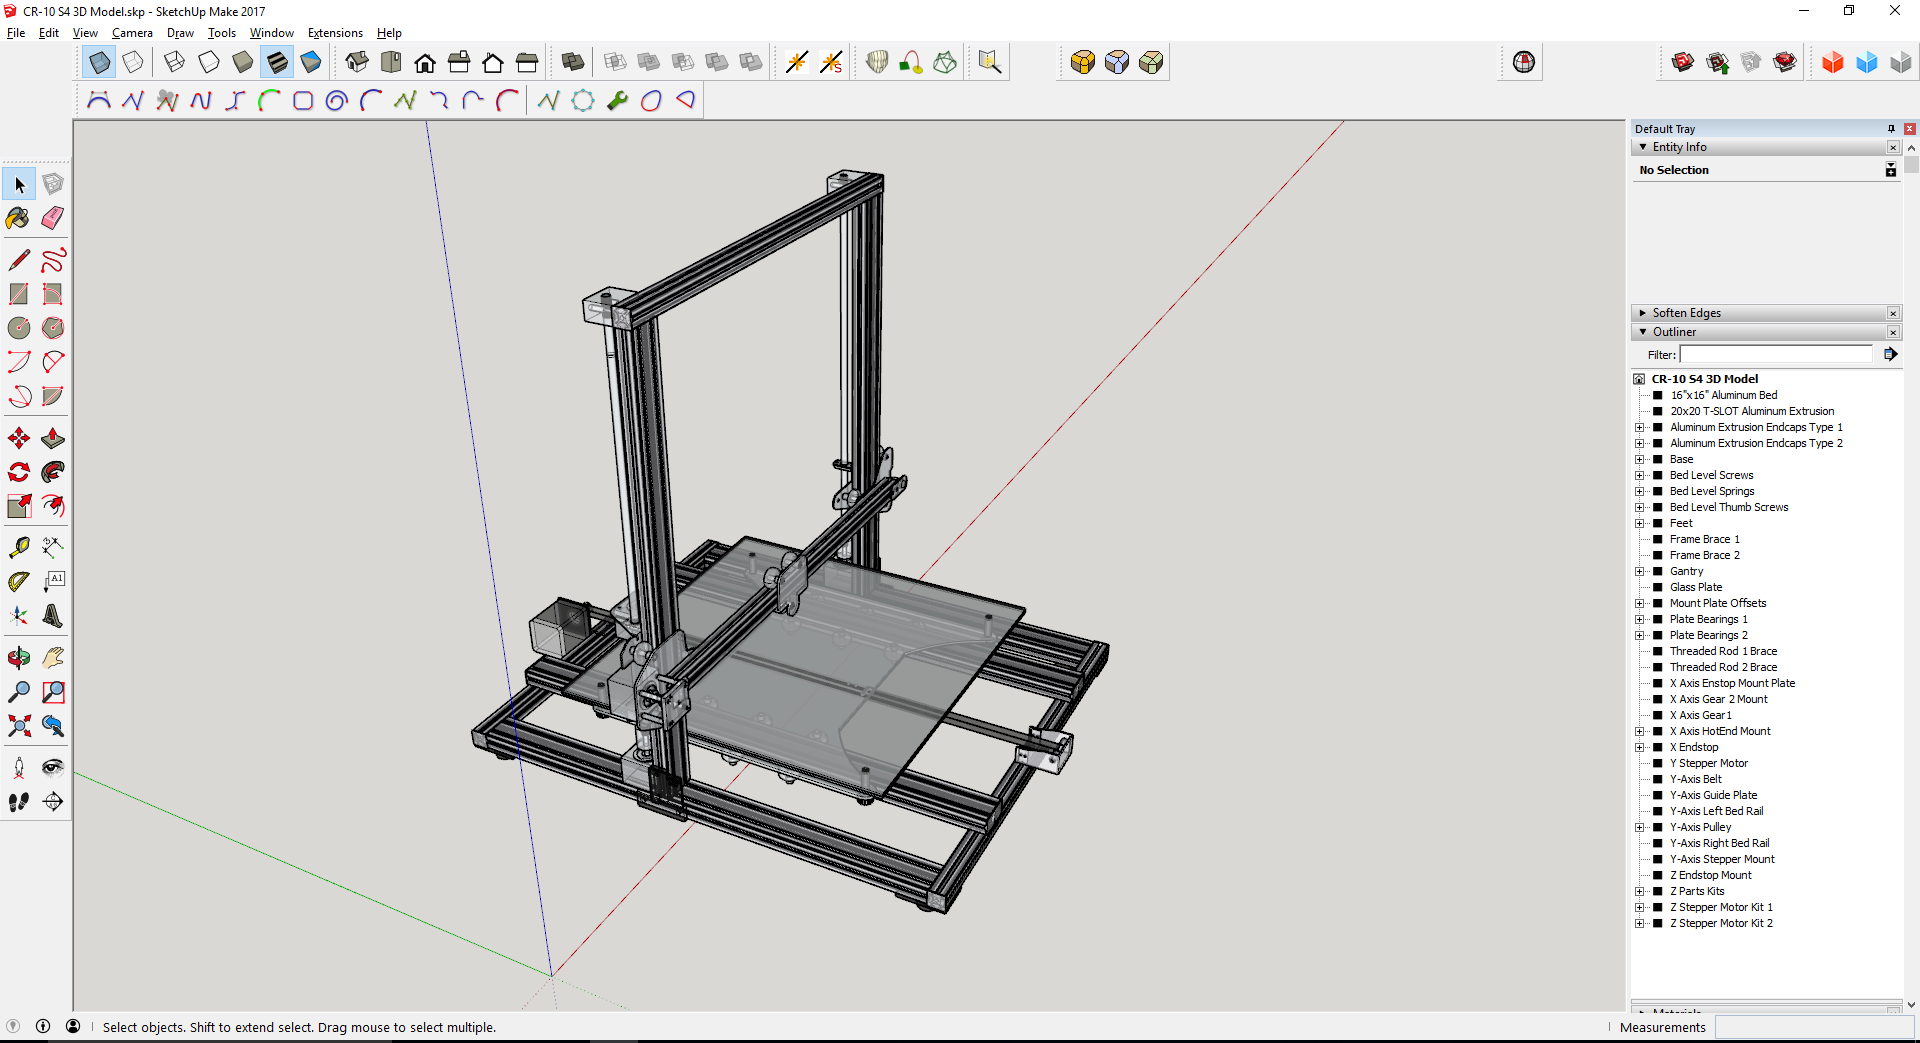 creality cr 10 s4 by jdub1981 thingiverse. Black Bedroom Furniture Sets. Home Design Ideas